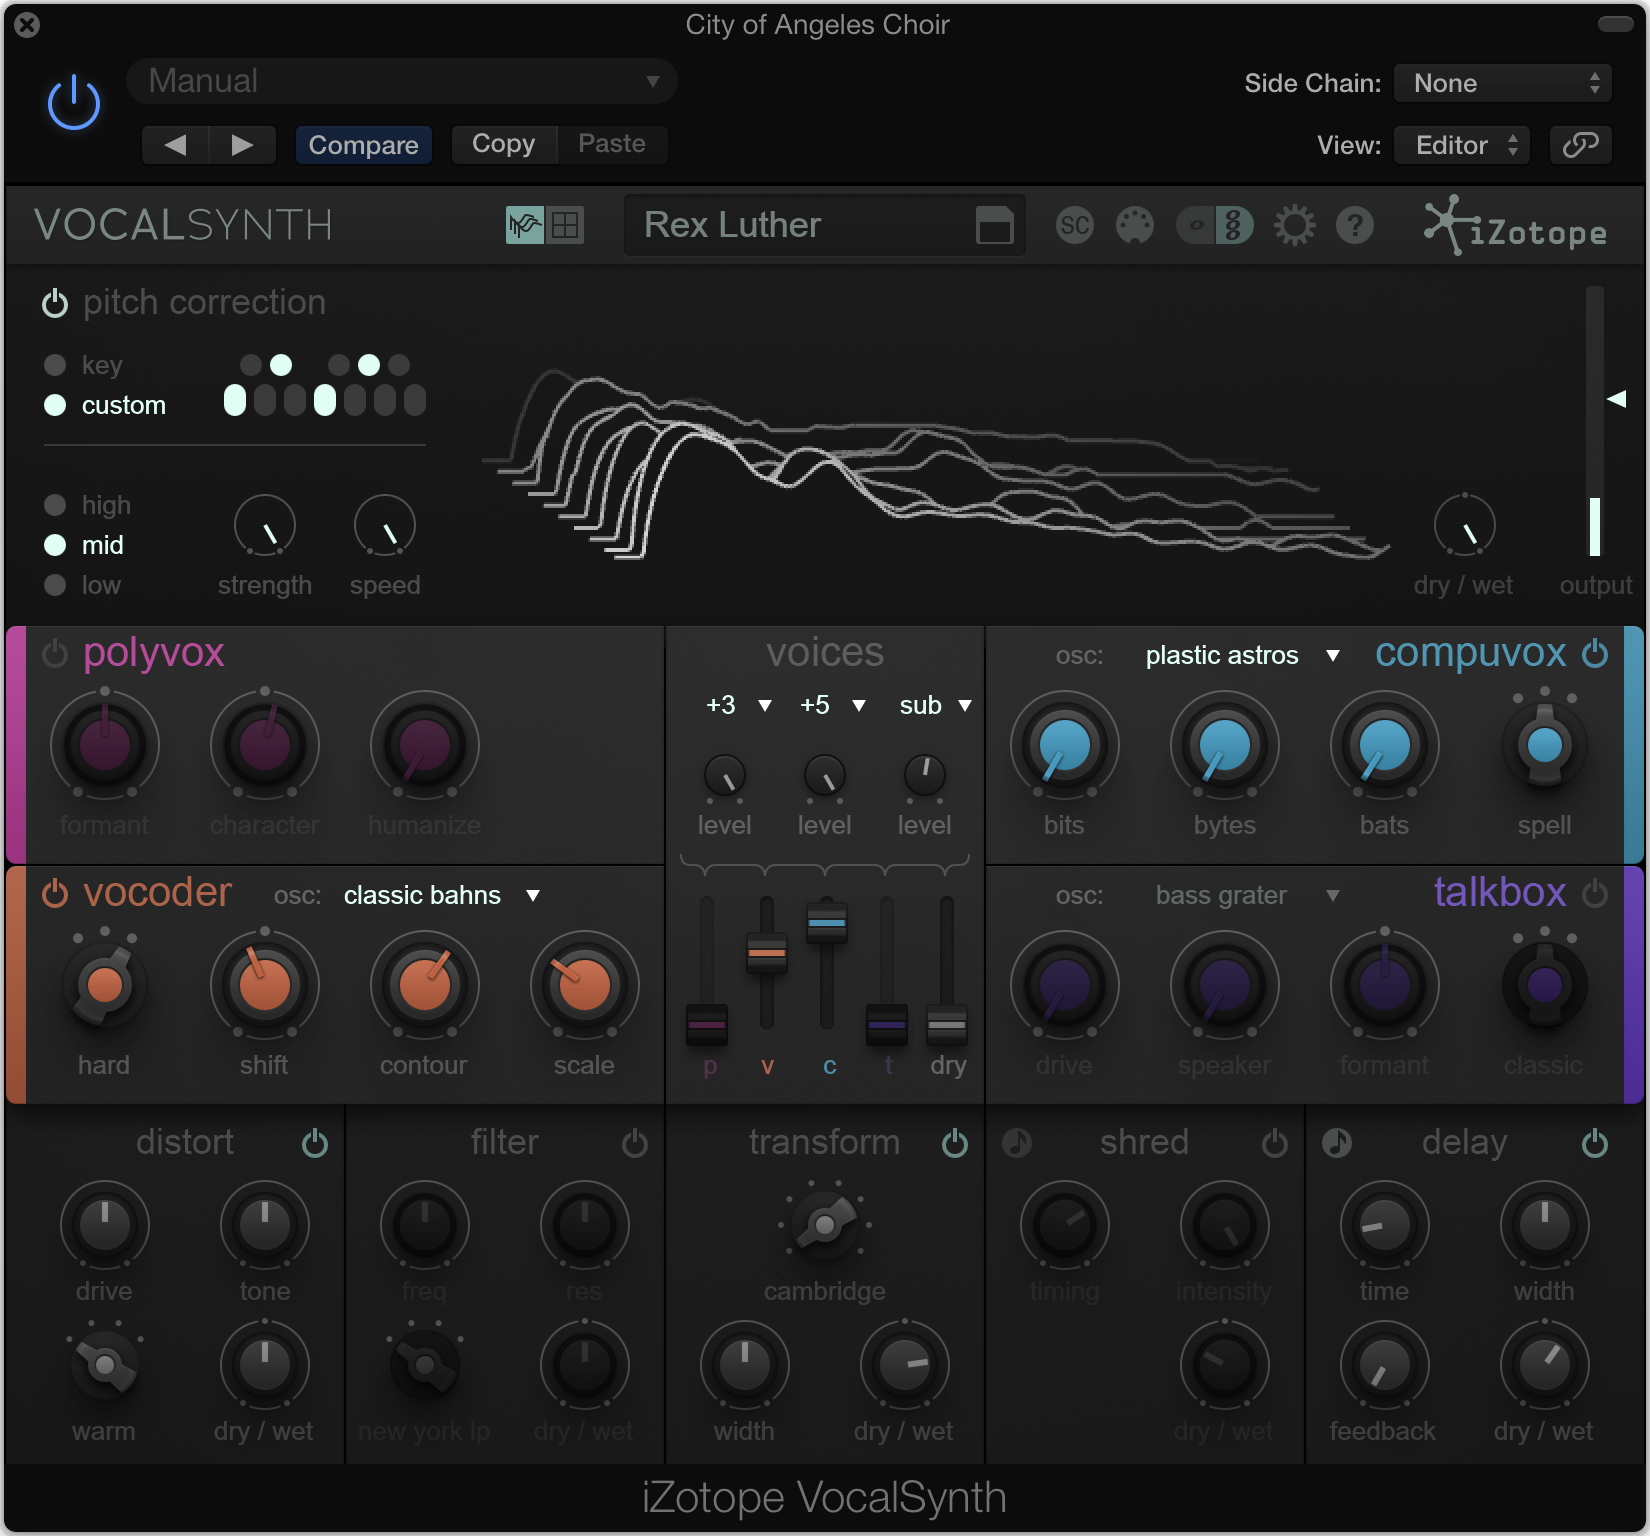 One plug-in combines all the classic vocal effects you want